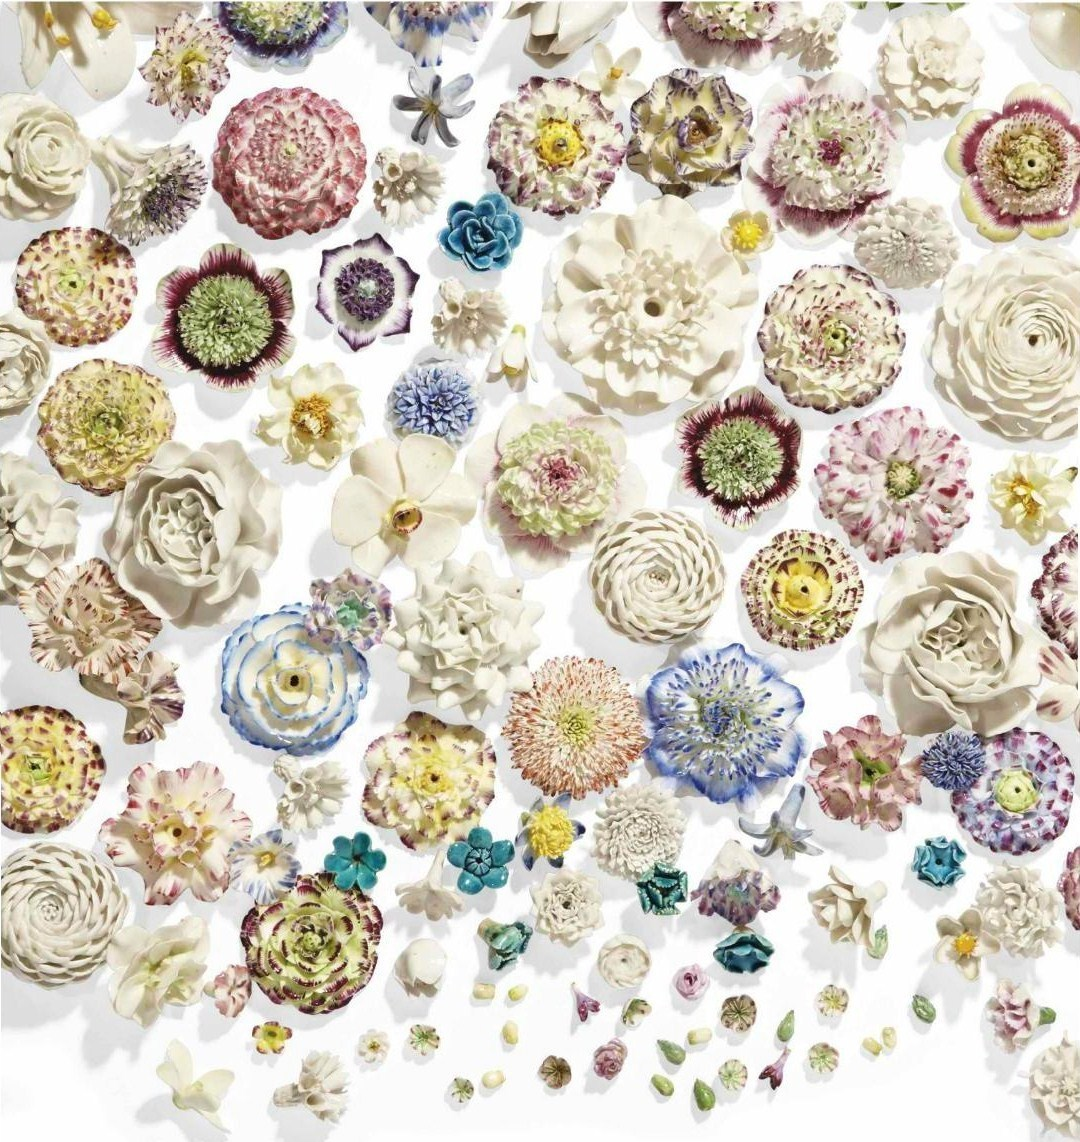 A collection of porcelain flowers in the classic Louis XV Sevres style via Christies